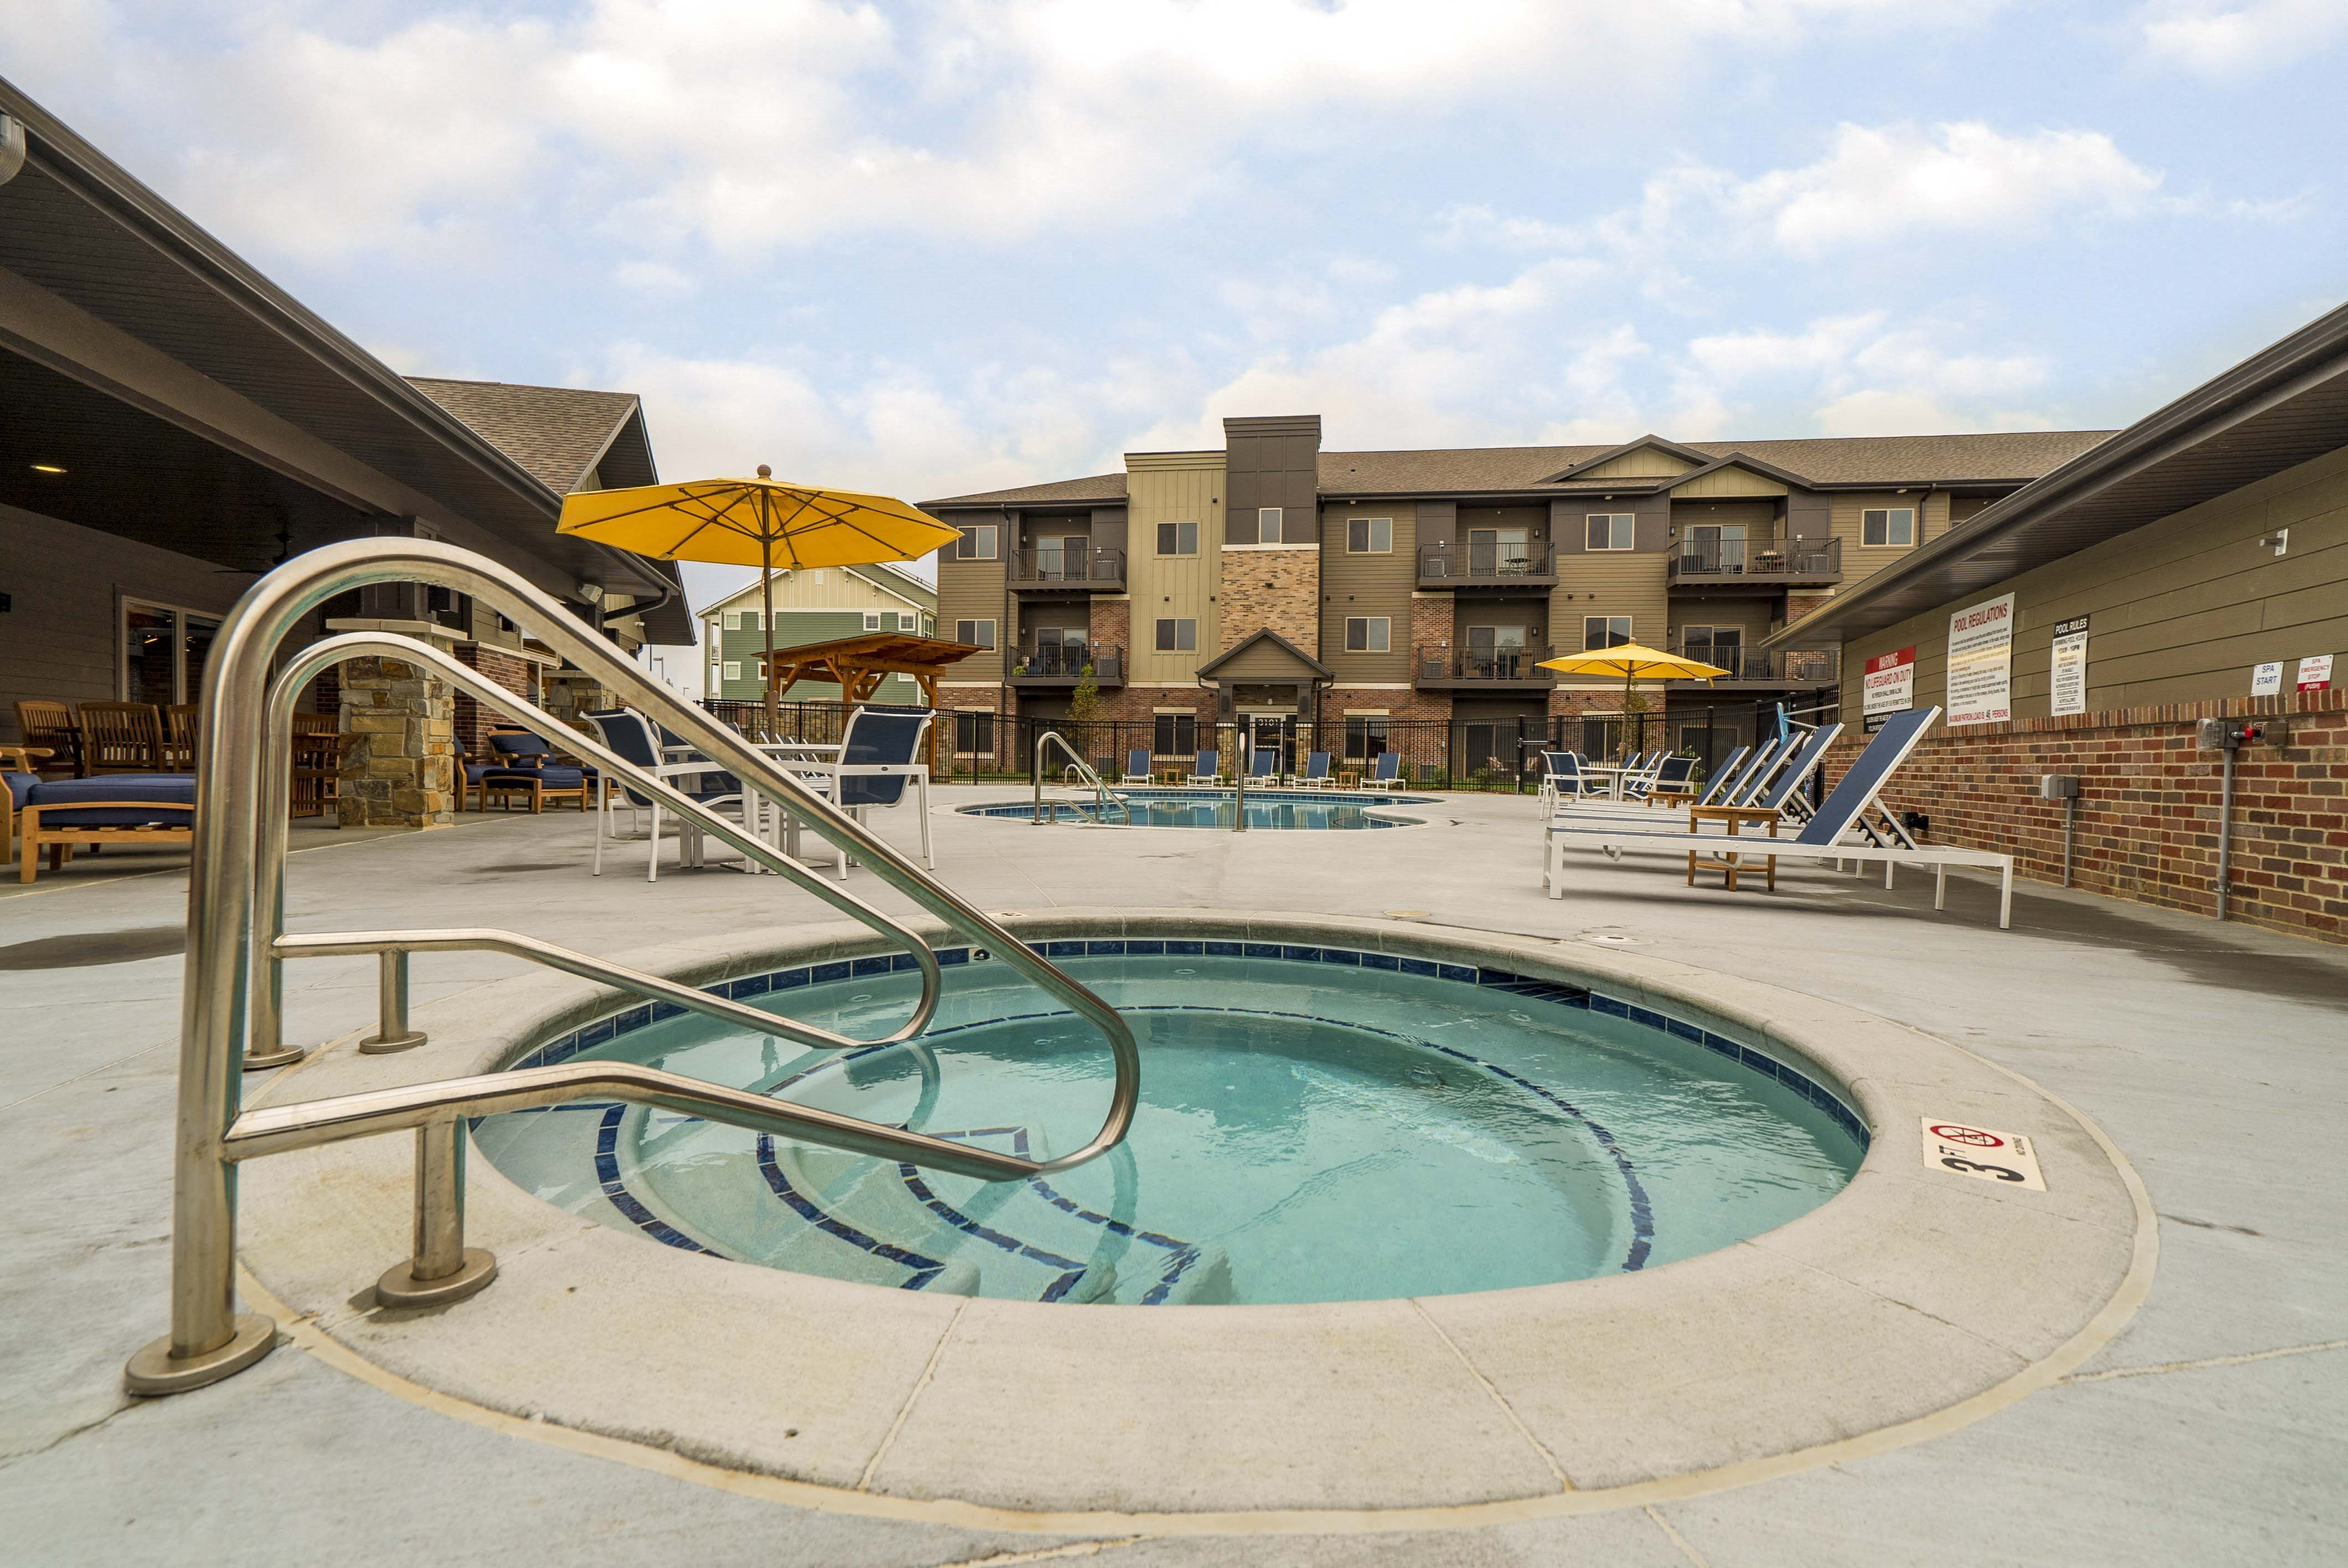 hot tub view of WH Flats new luxury apartments in south Lincoln NE 68516